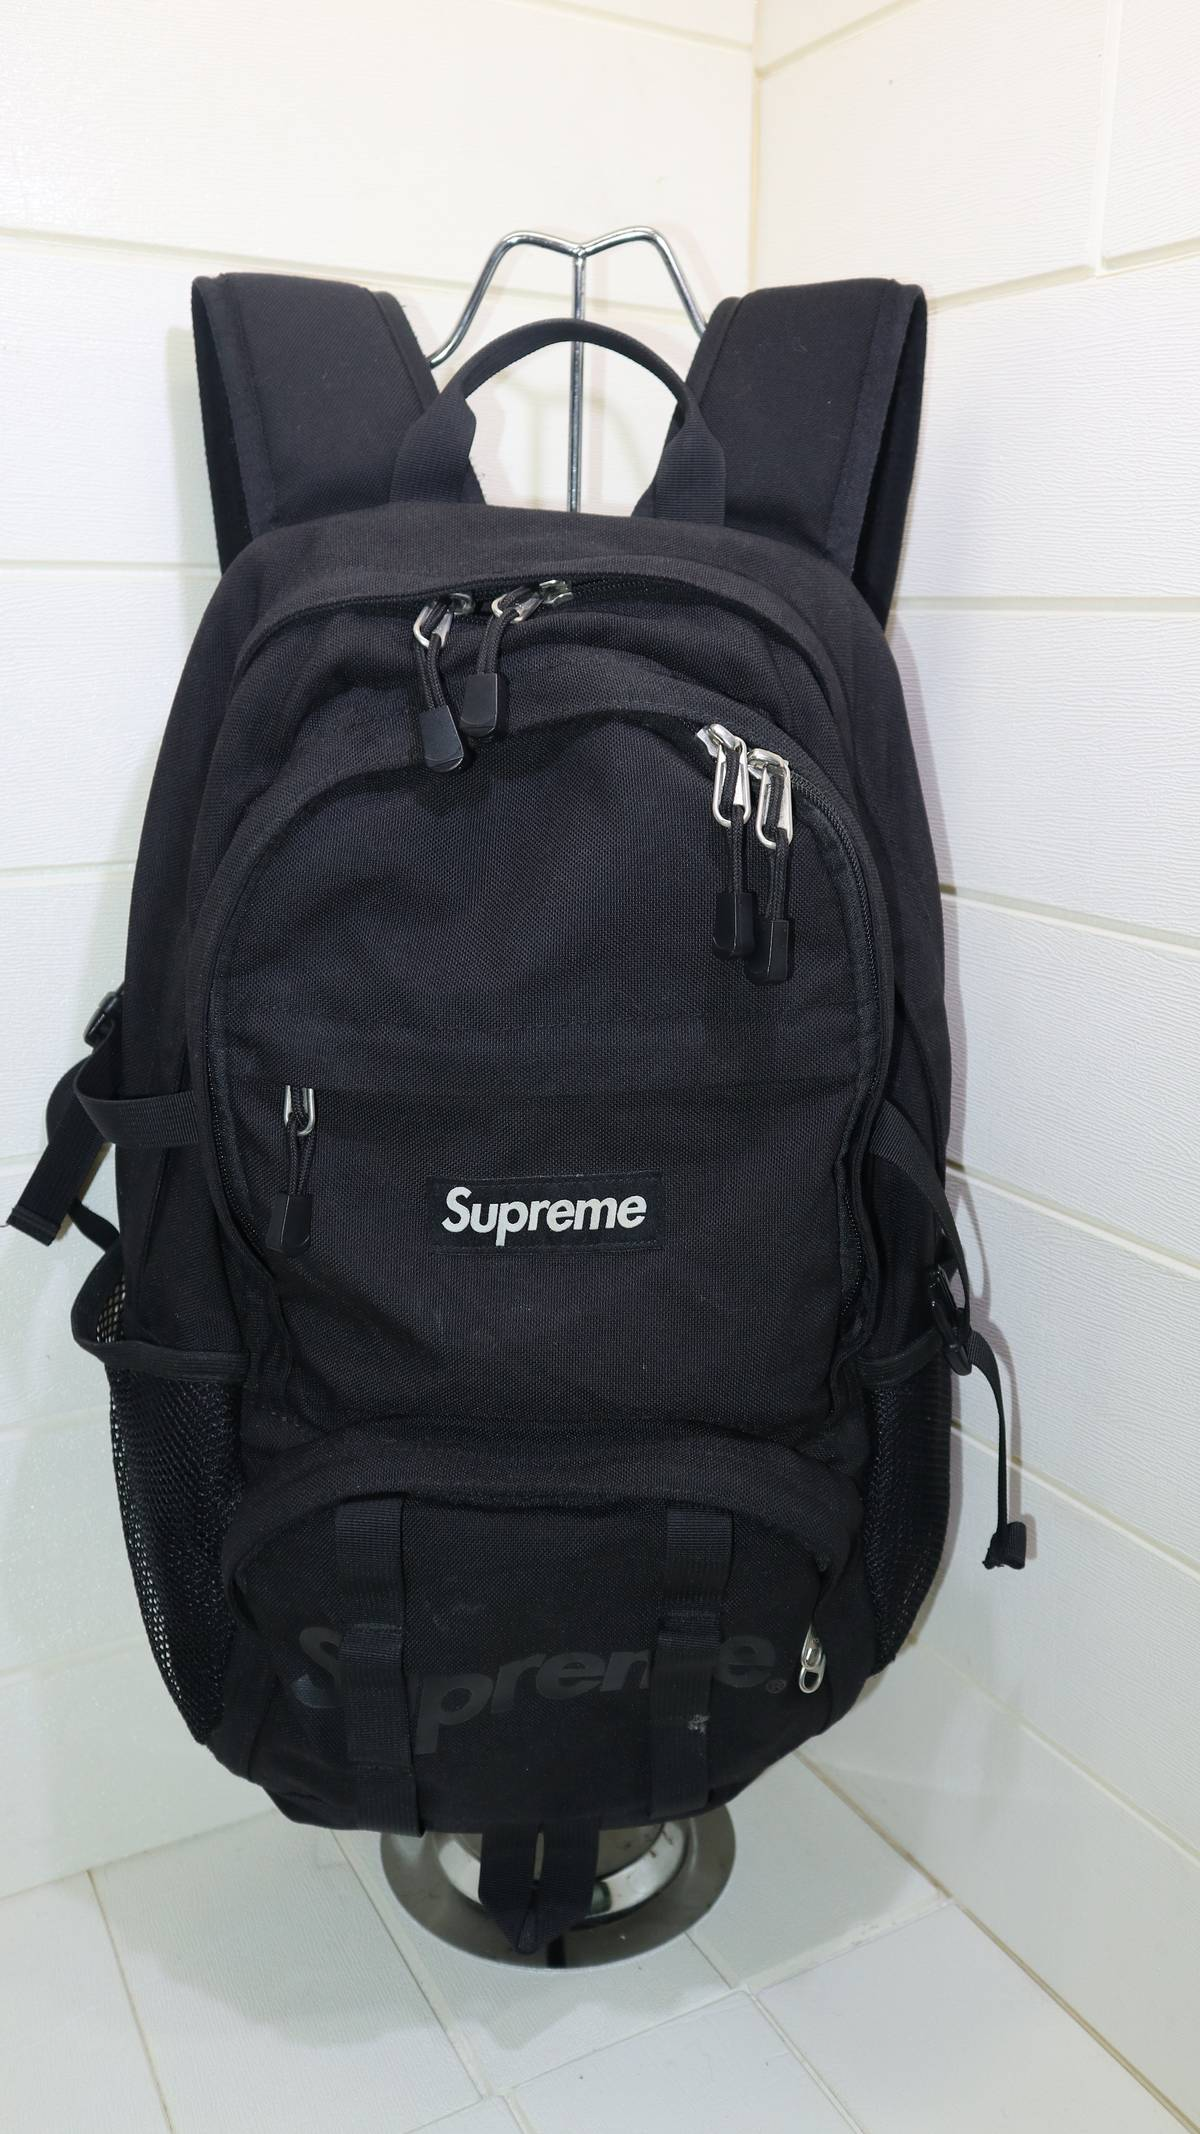 Supreme Supreme Ss15 Backpack | Grailed